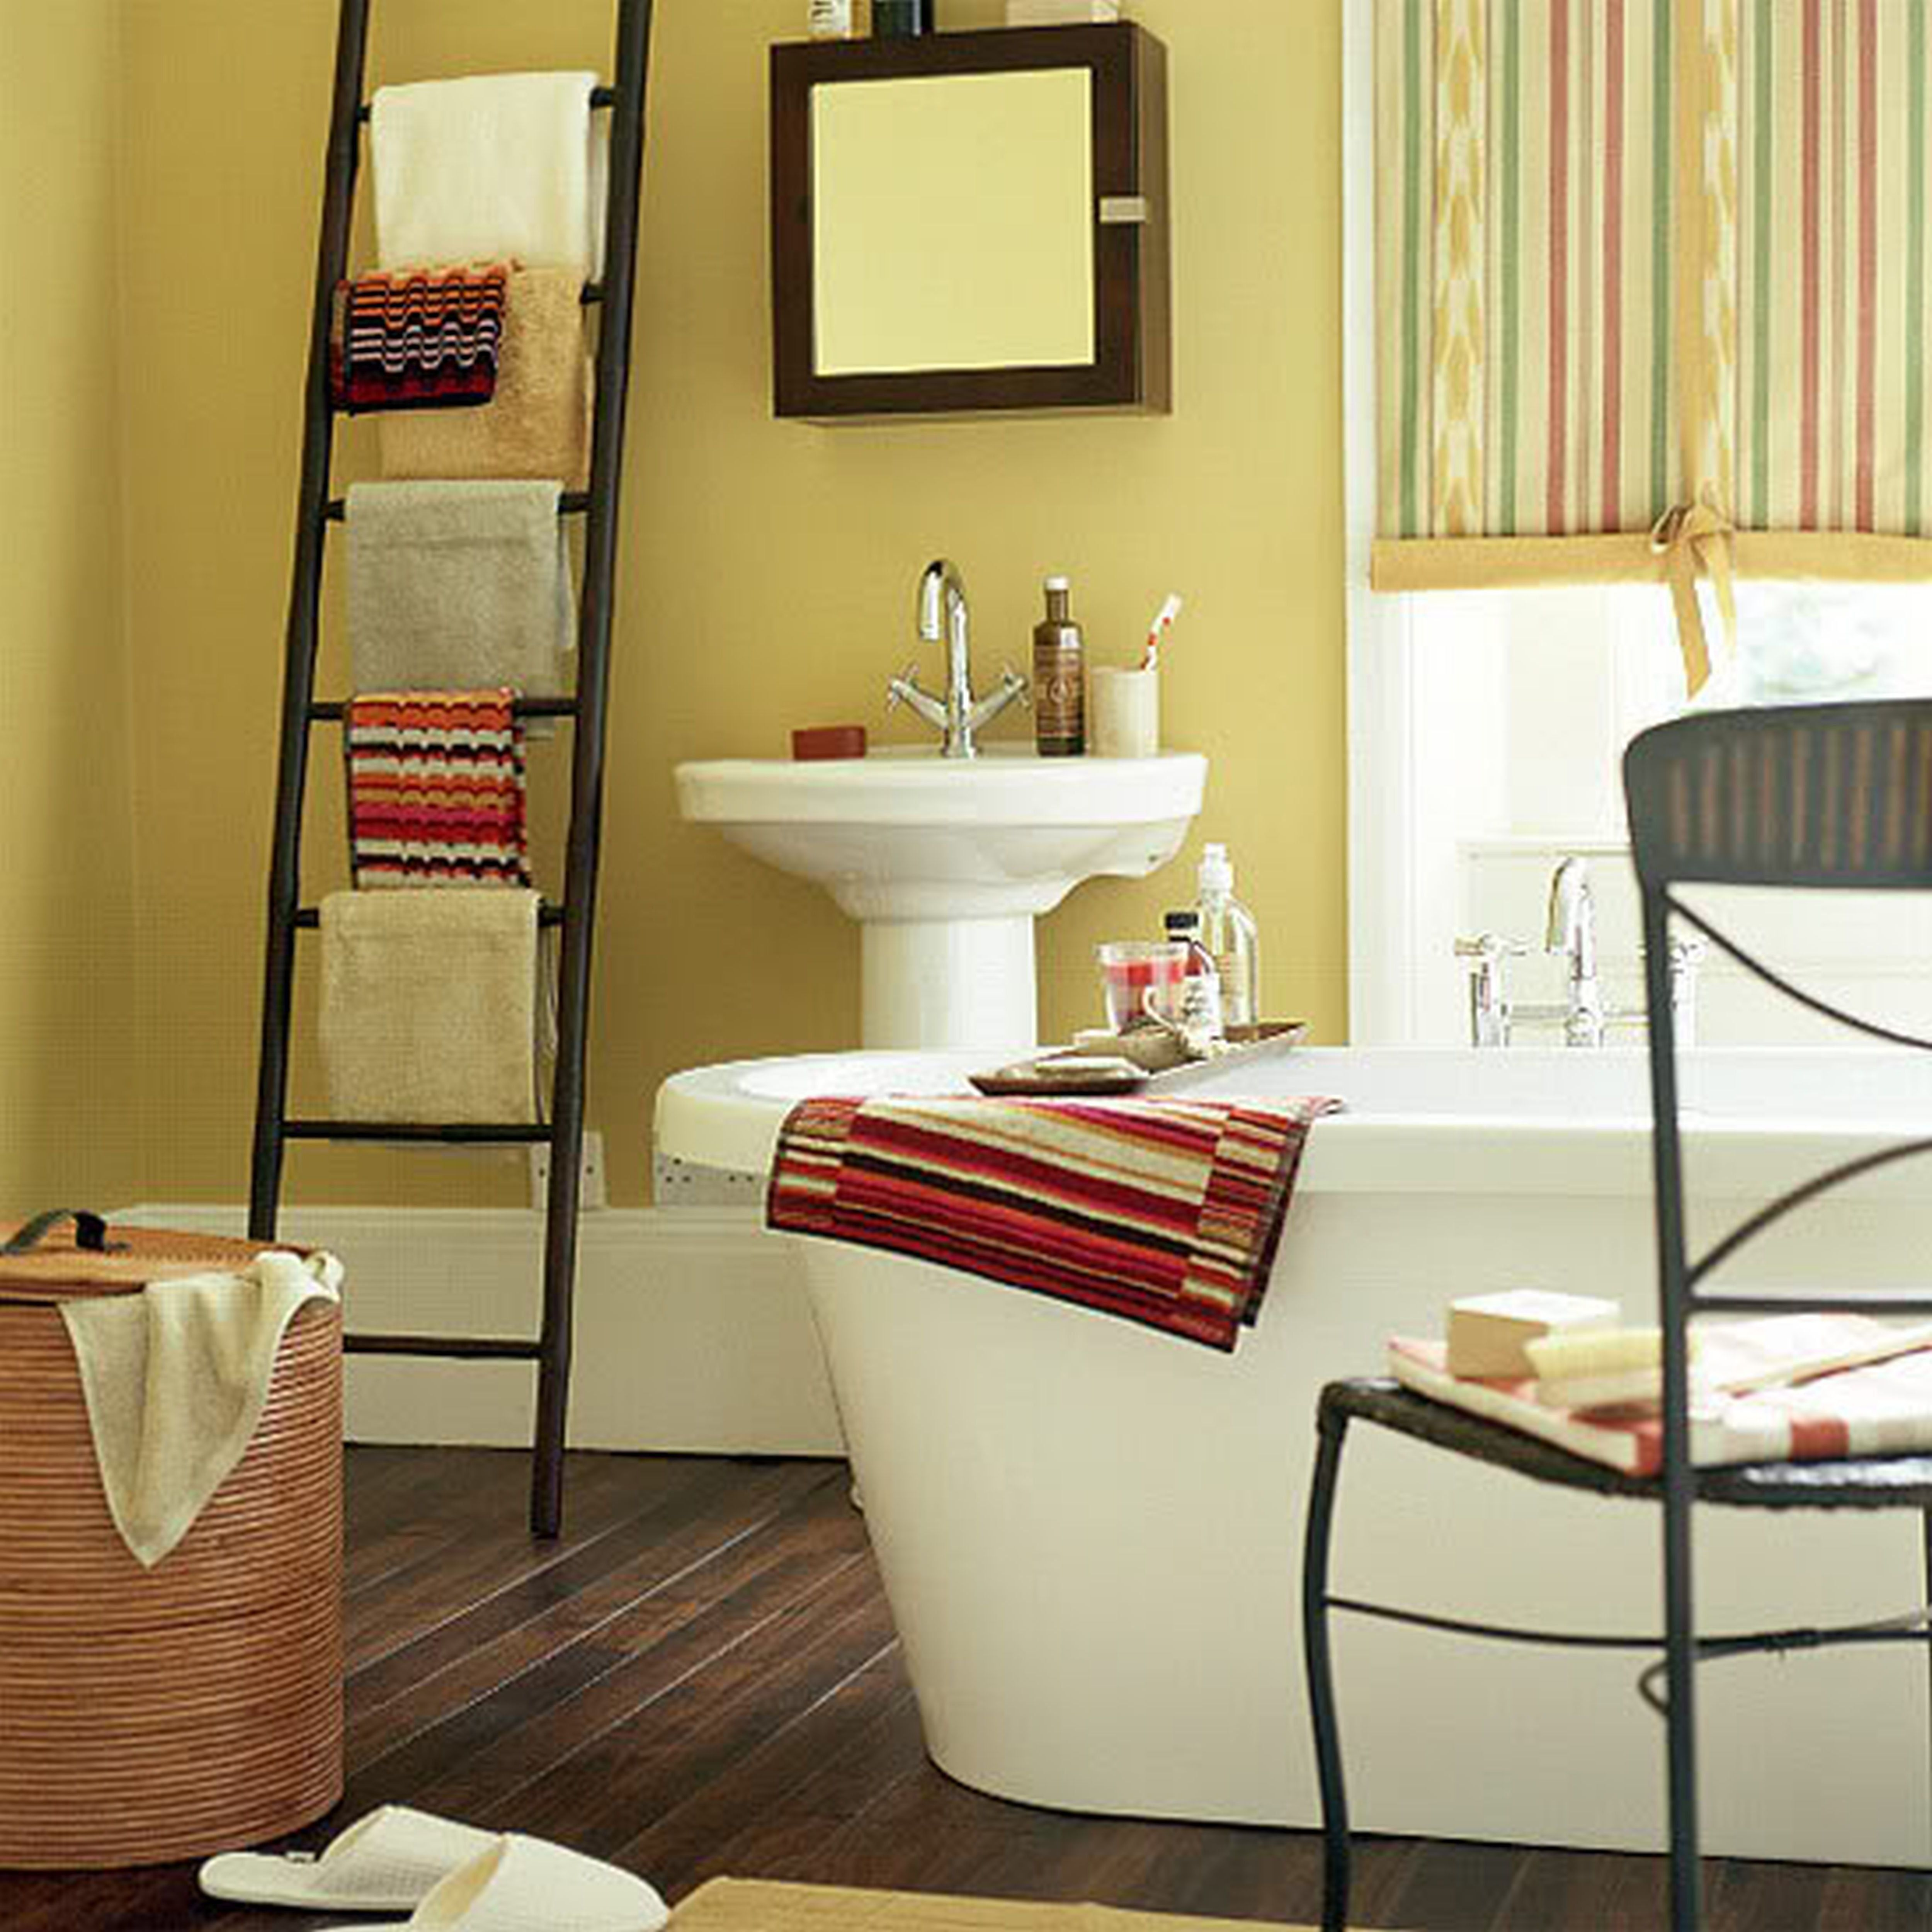 Bathroom, Glamorus With Yellow Painted Wall And Black Polished Iron ...